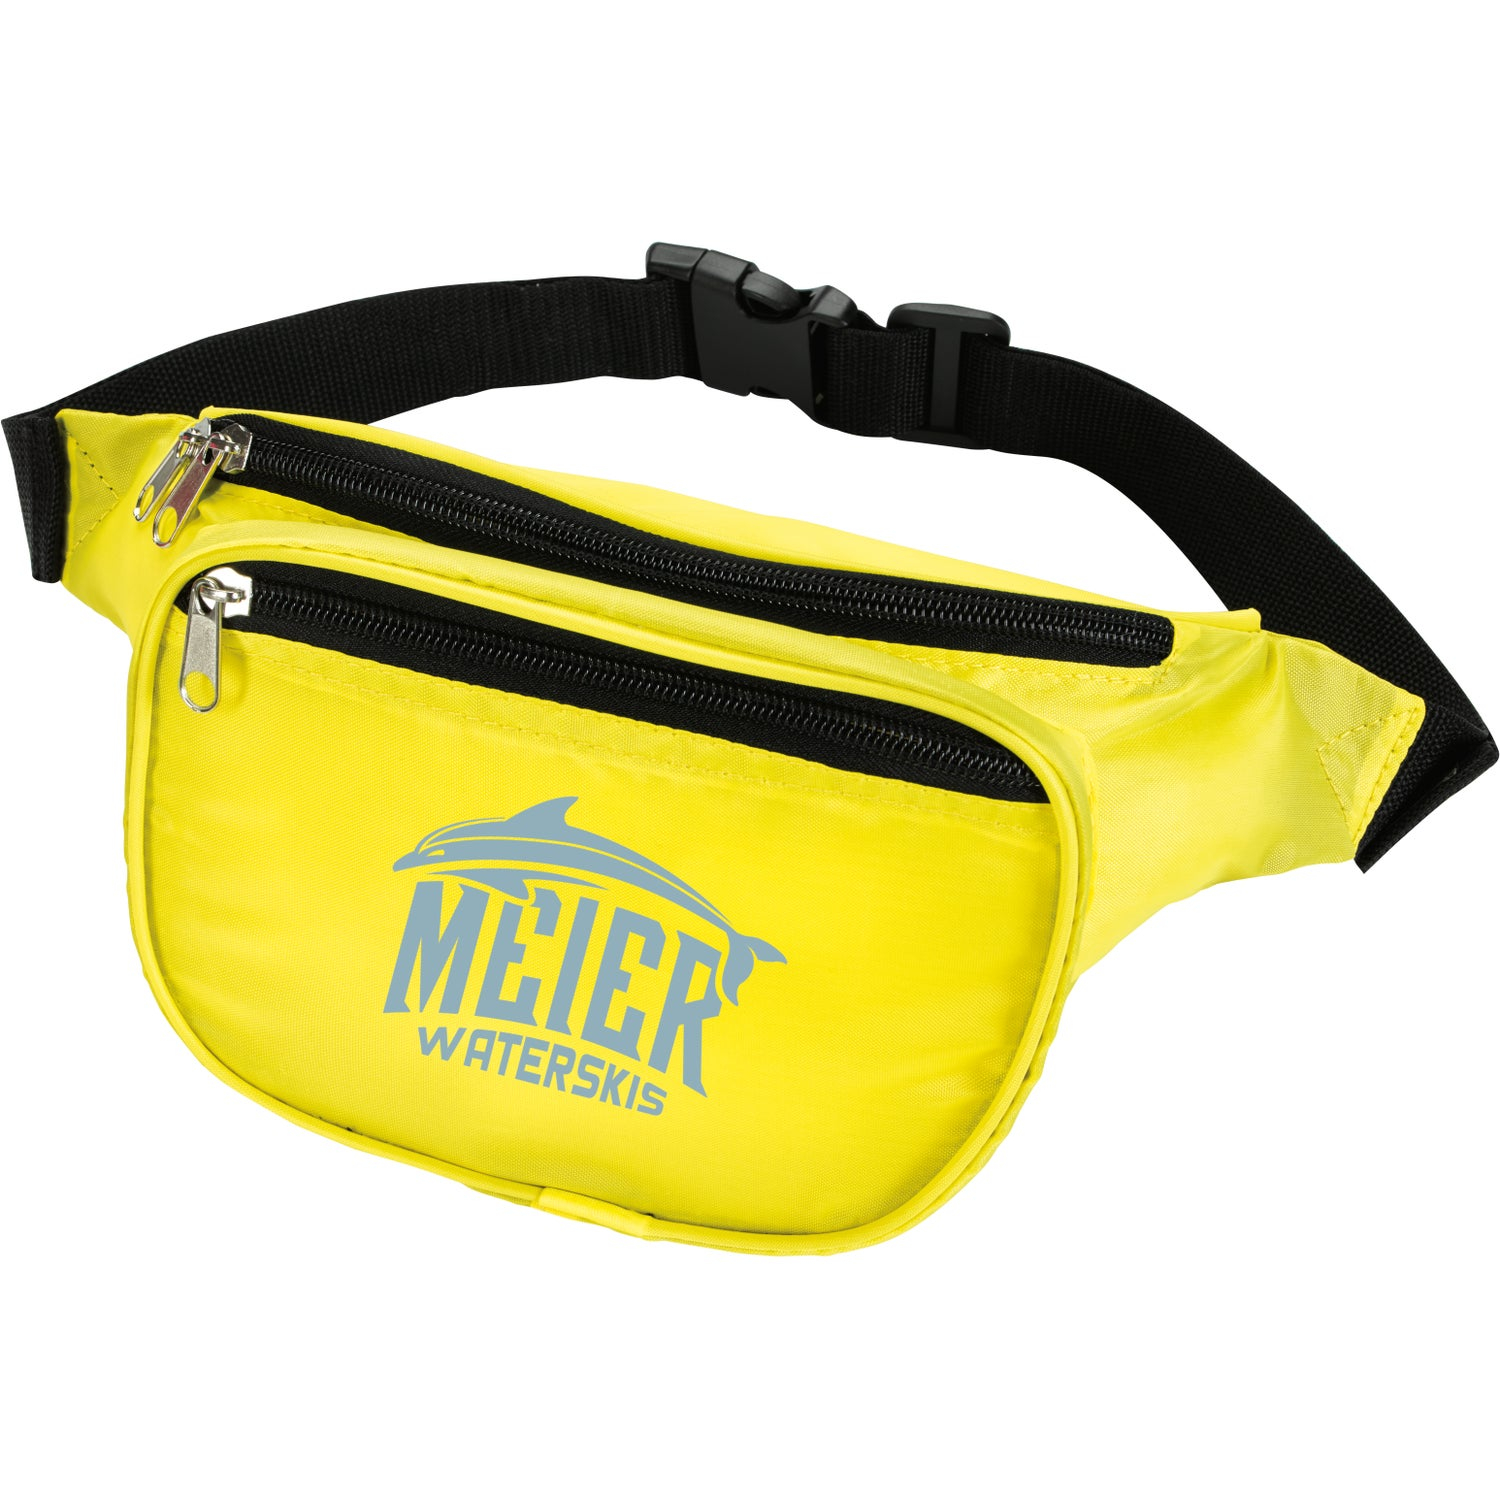 e723ca8b CLICK HERE to Order Neon Fanny Packs Printed with Your Logo for $5.32 Ea.